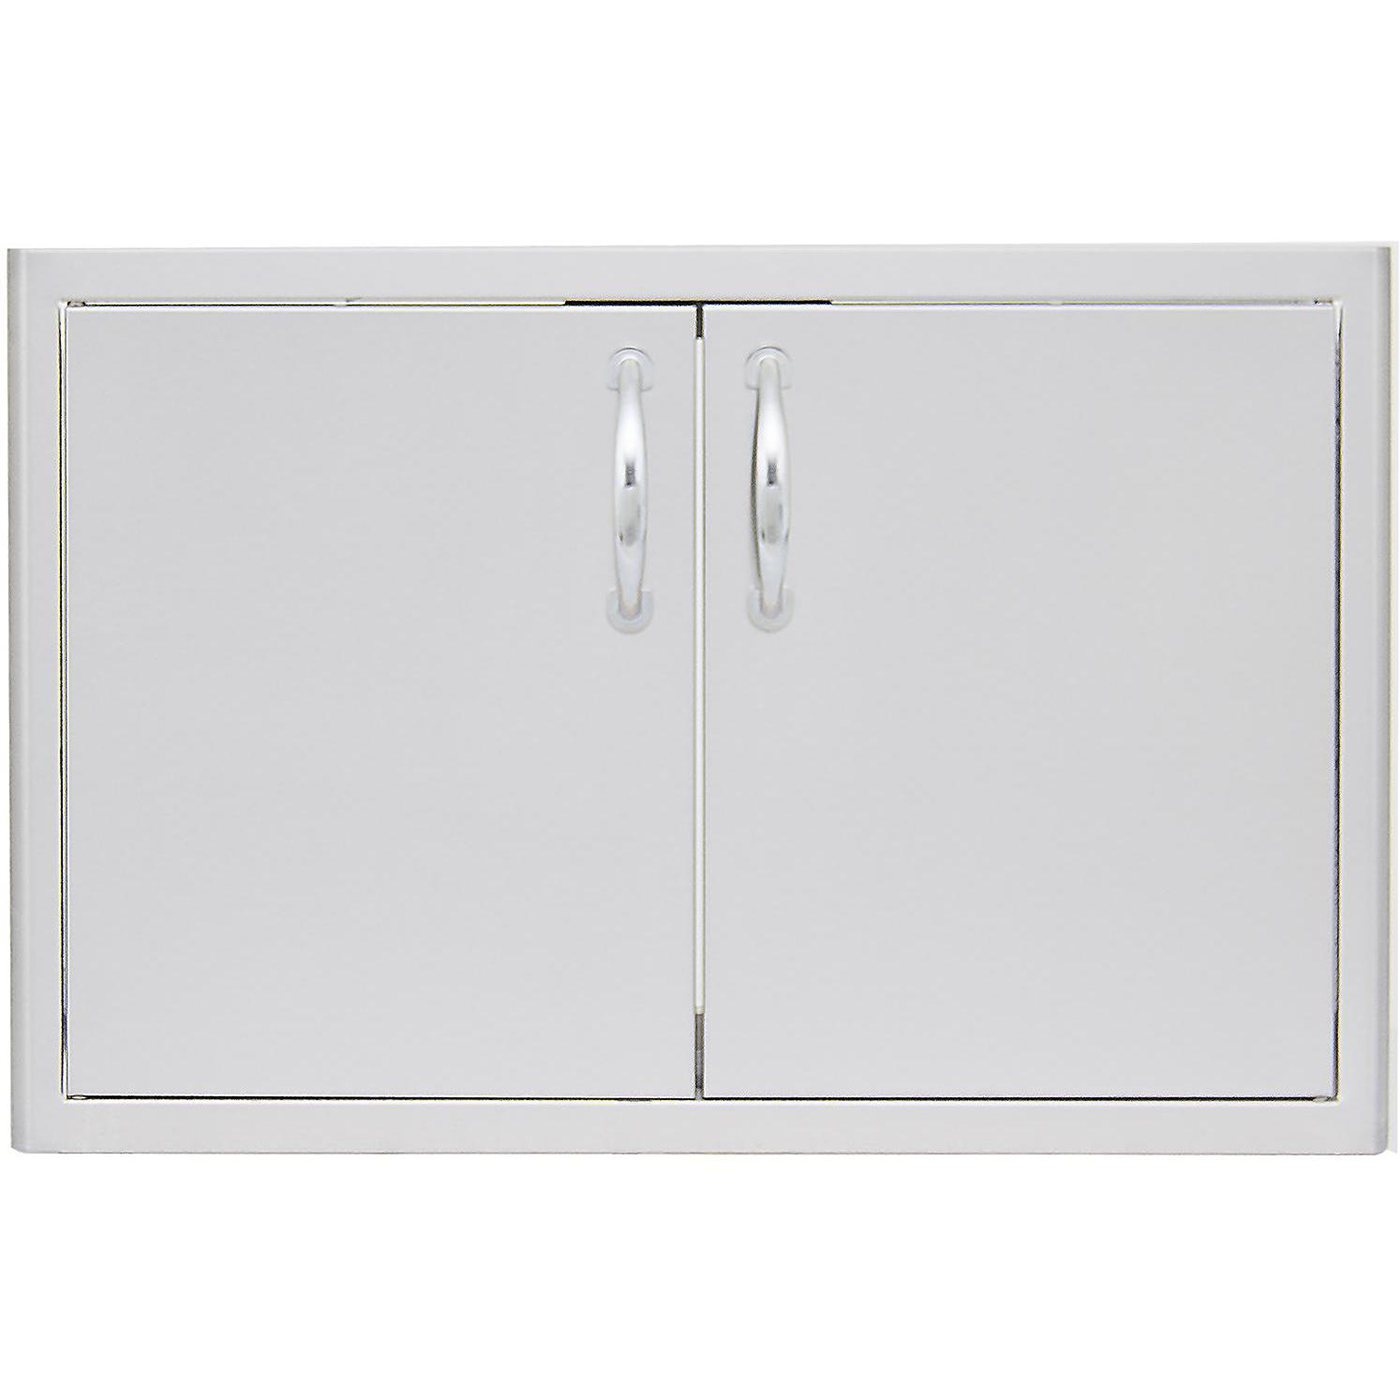 "Blaze 32"" Double Access Door w/ Paper Towel Dispenser"